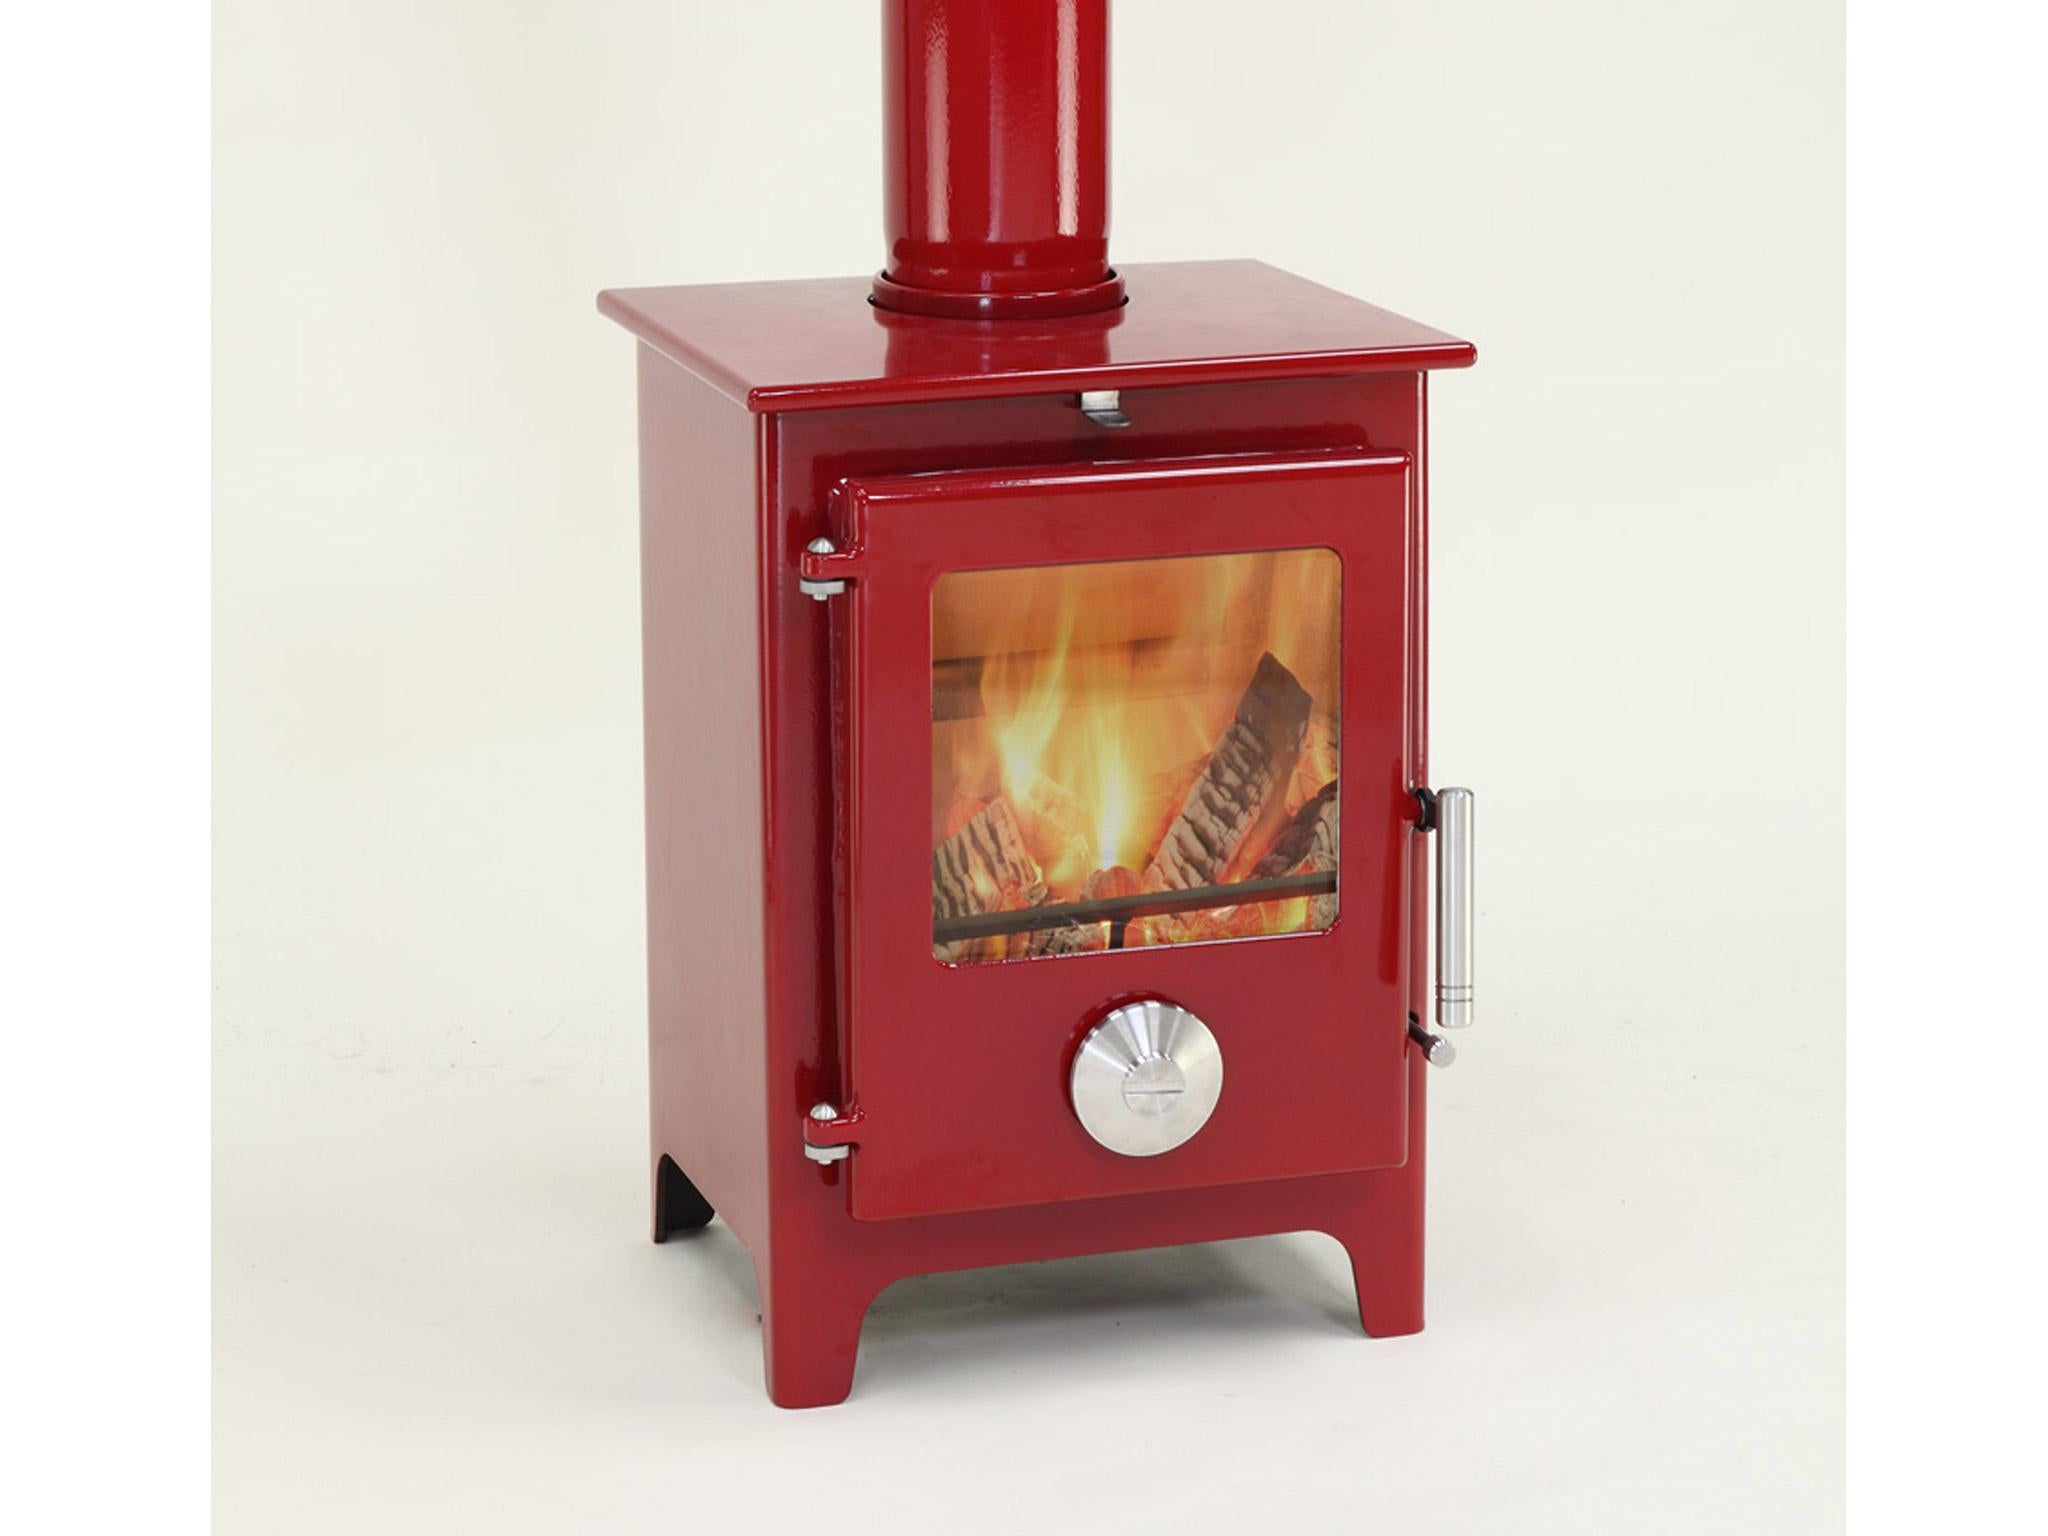 Best log burners to choose - guide included